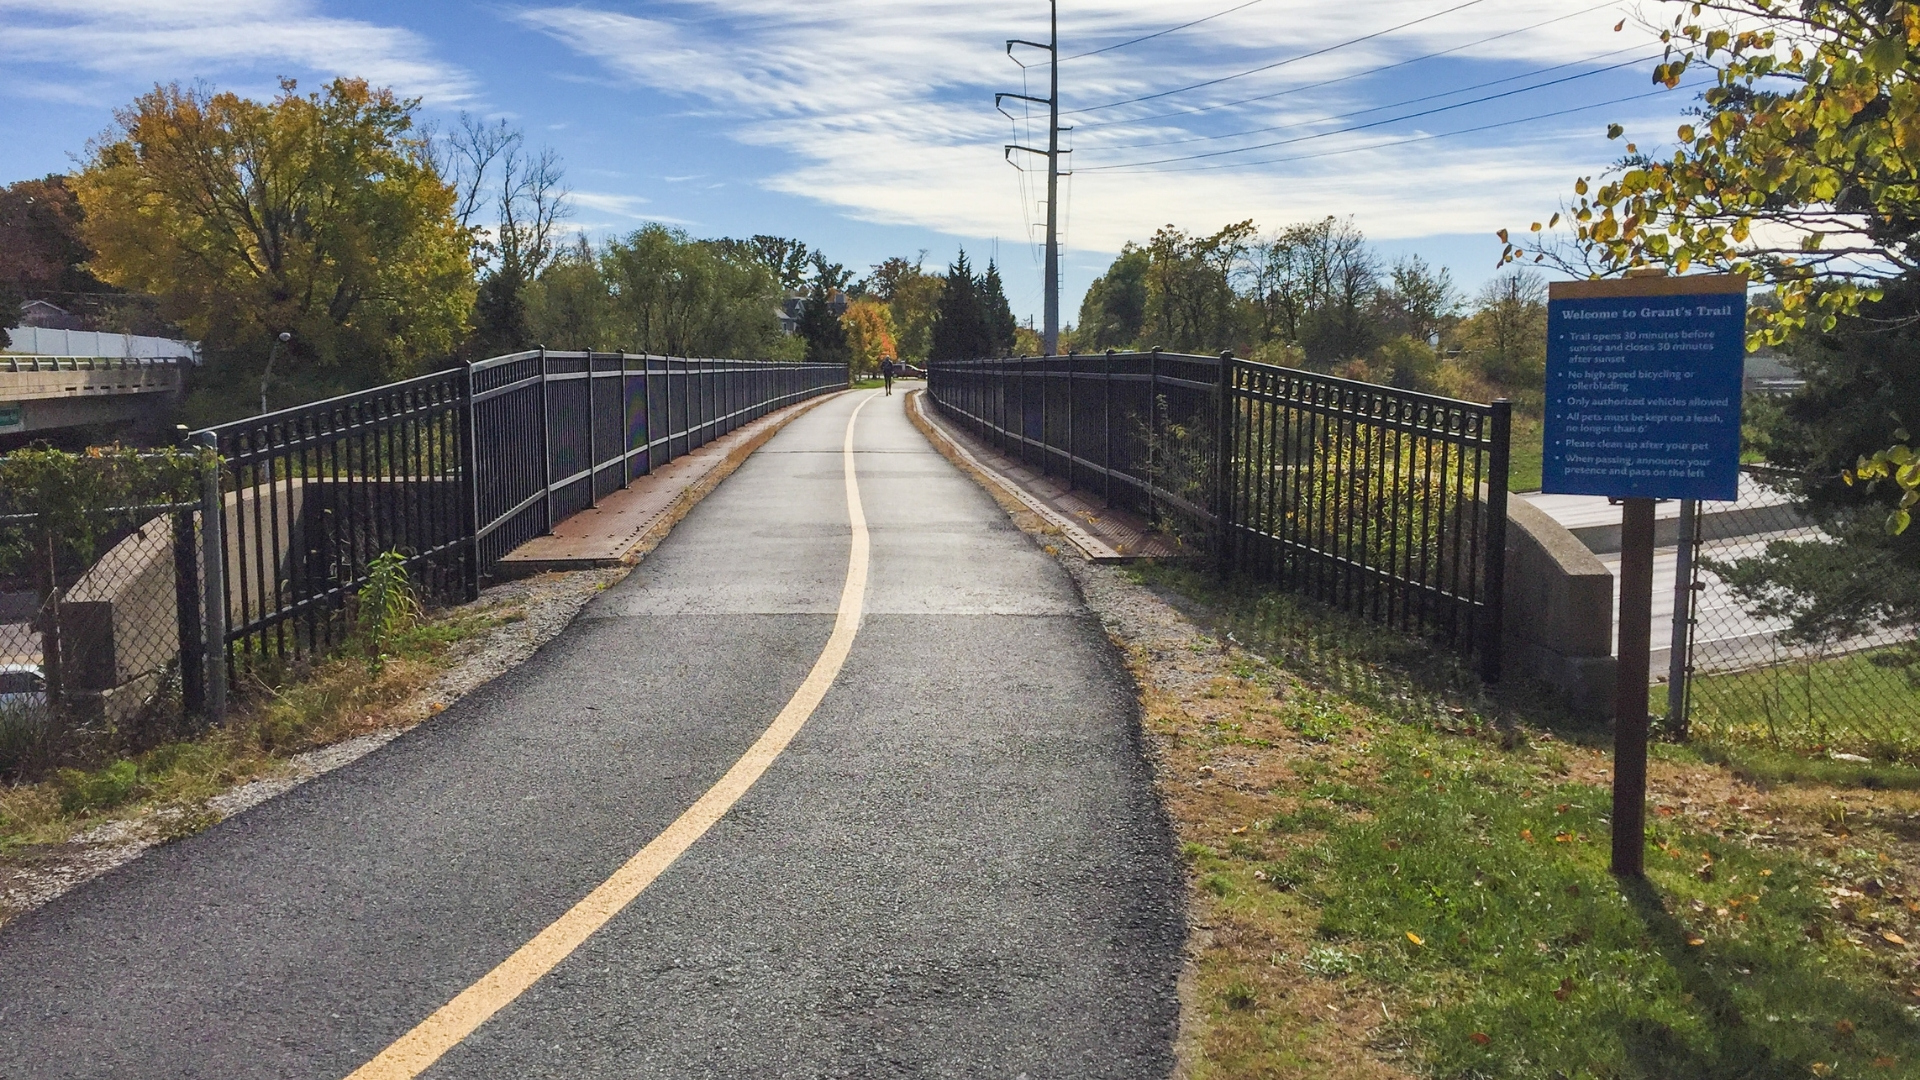 mcdermott remodeling top trails in websters grove